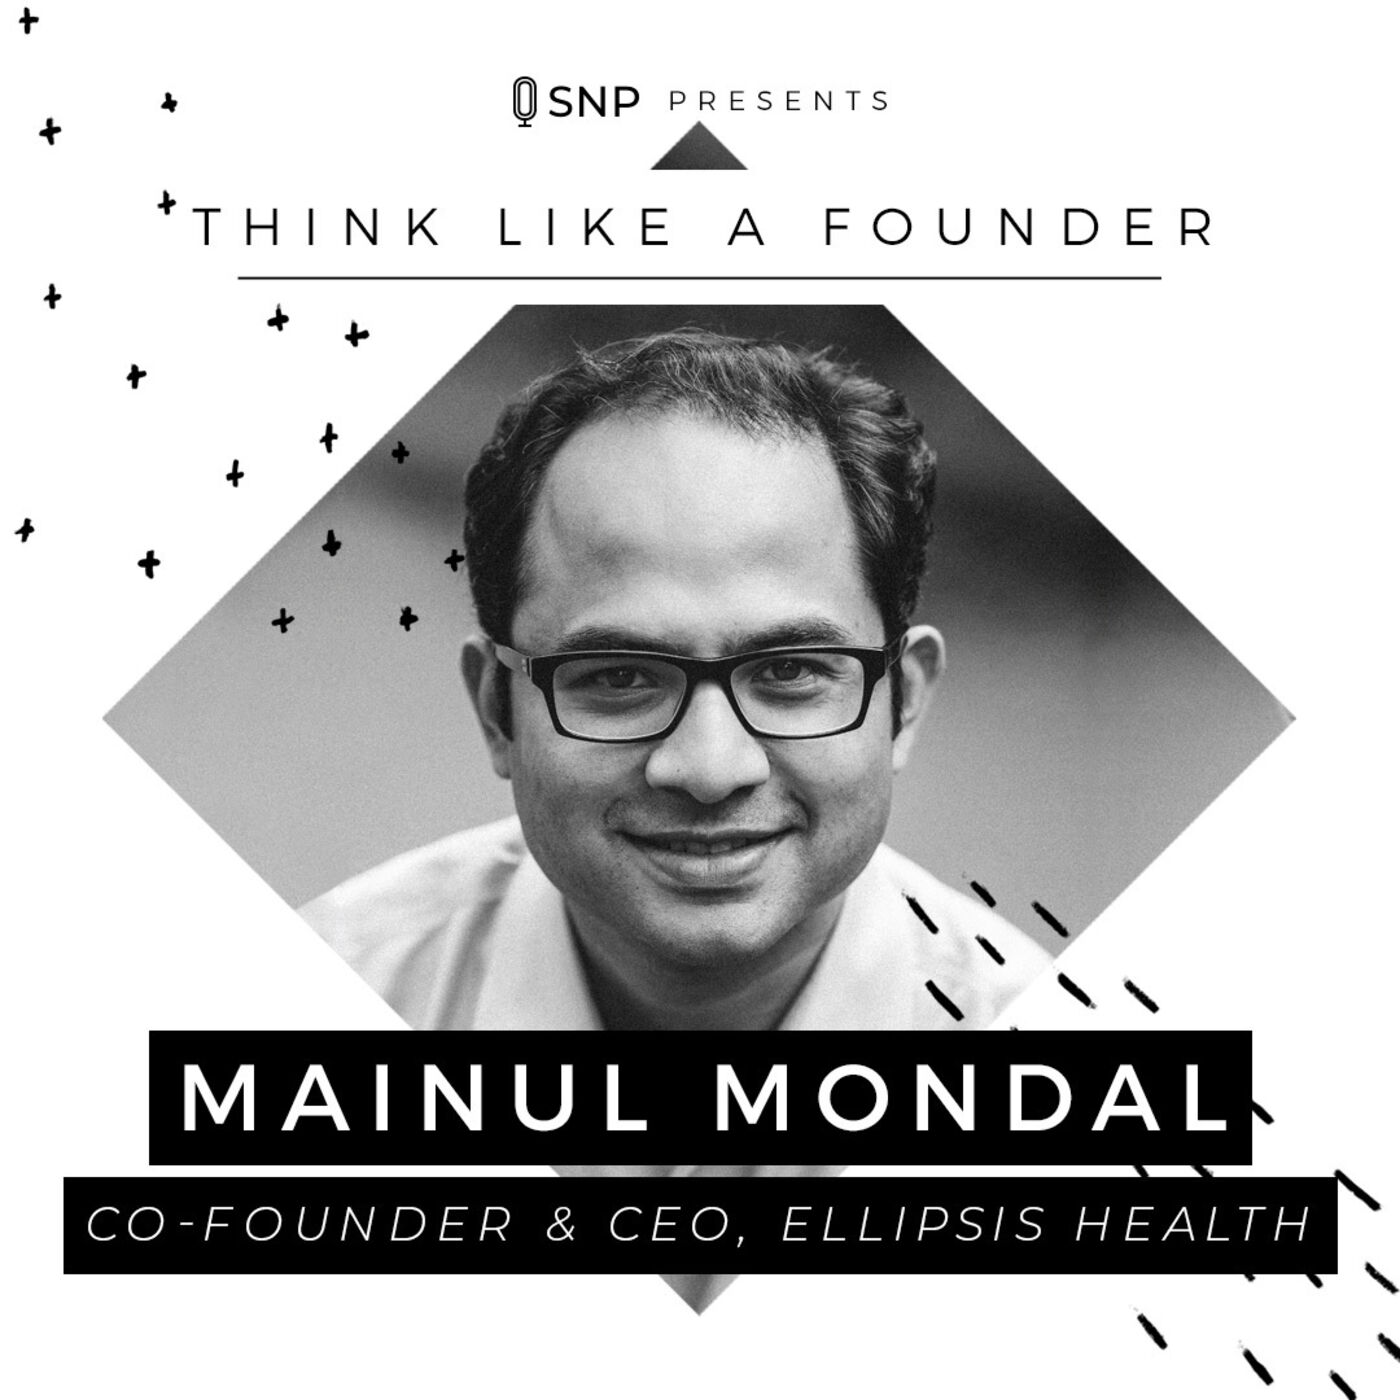 018: Mainul Mondal - Co-Founder and CEO of Ellipsis Health